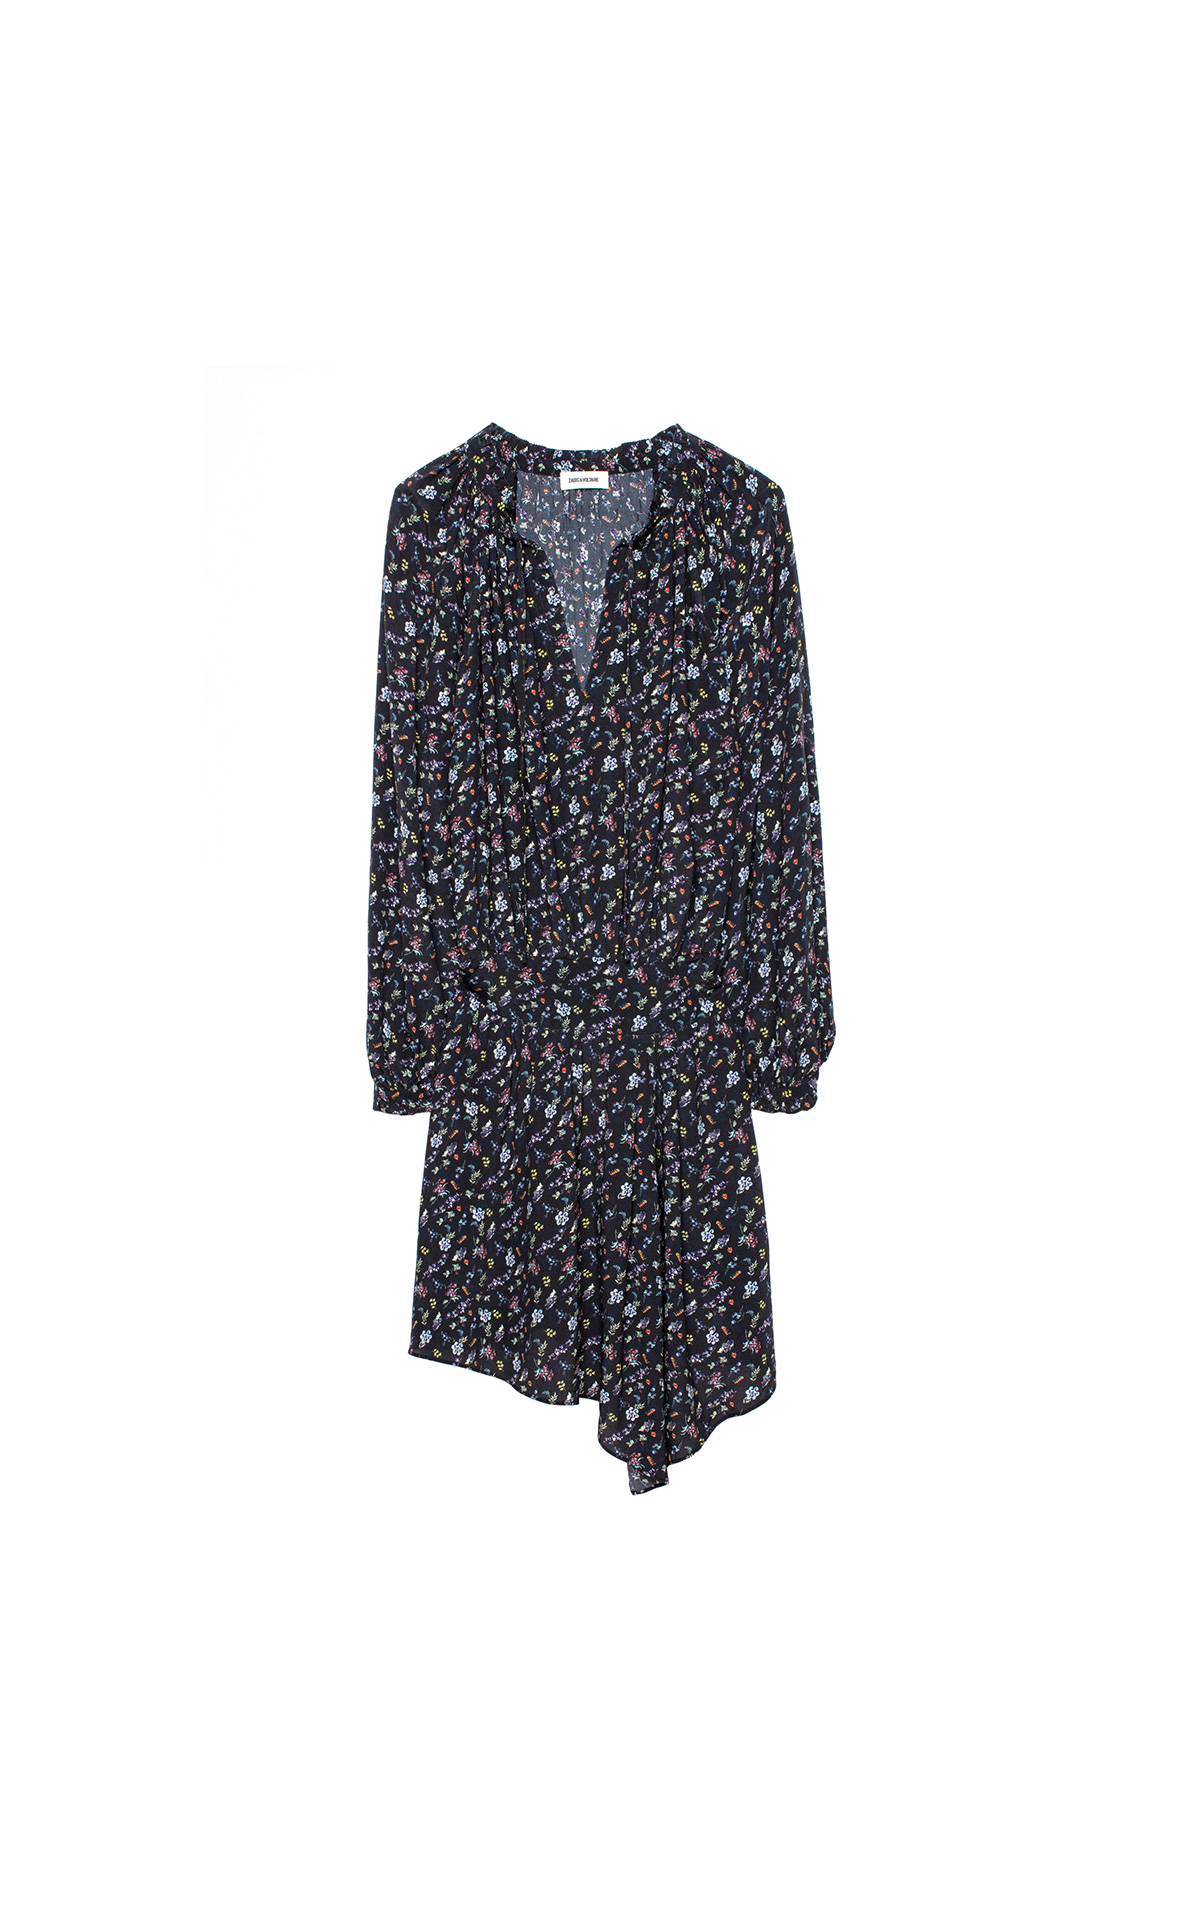 La Vallée Village Zadig & Voltaire printed dress